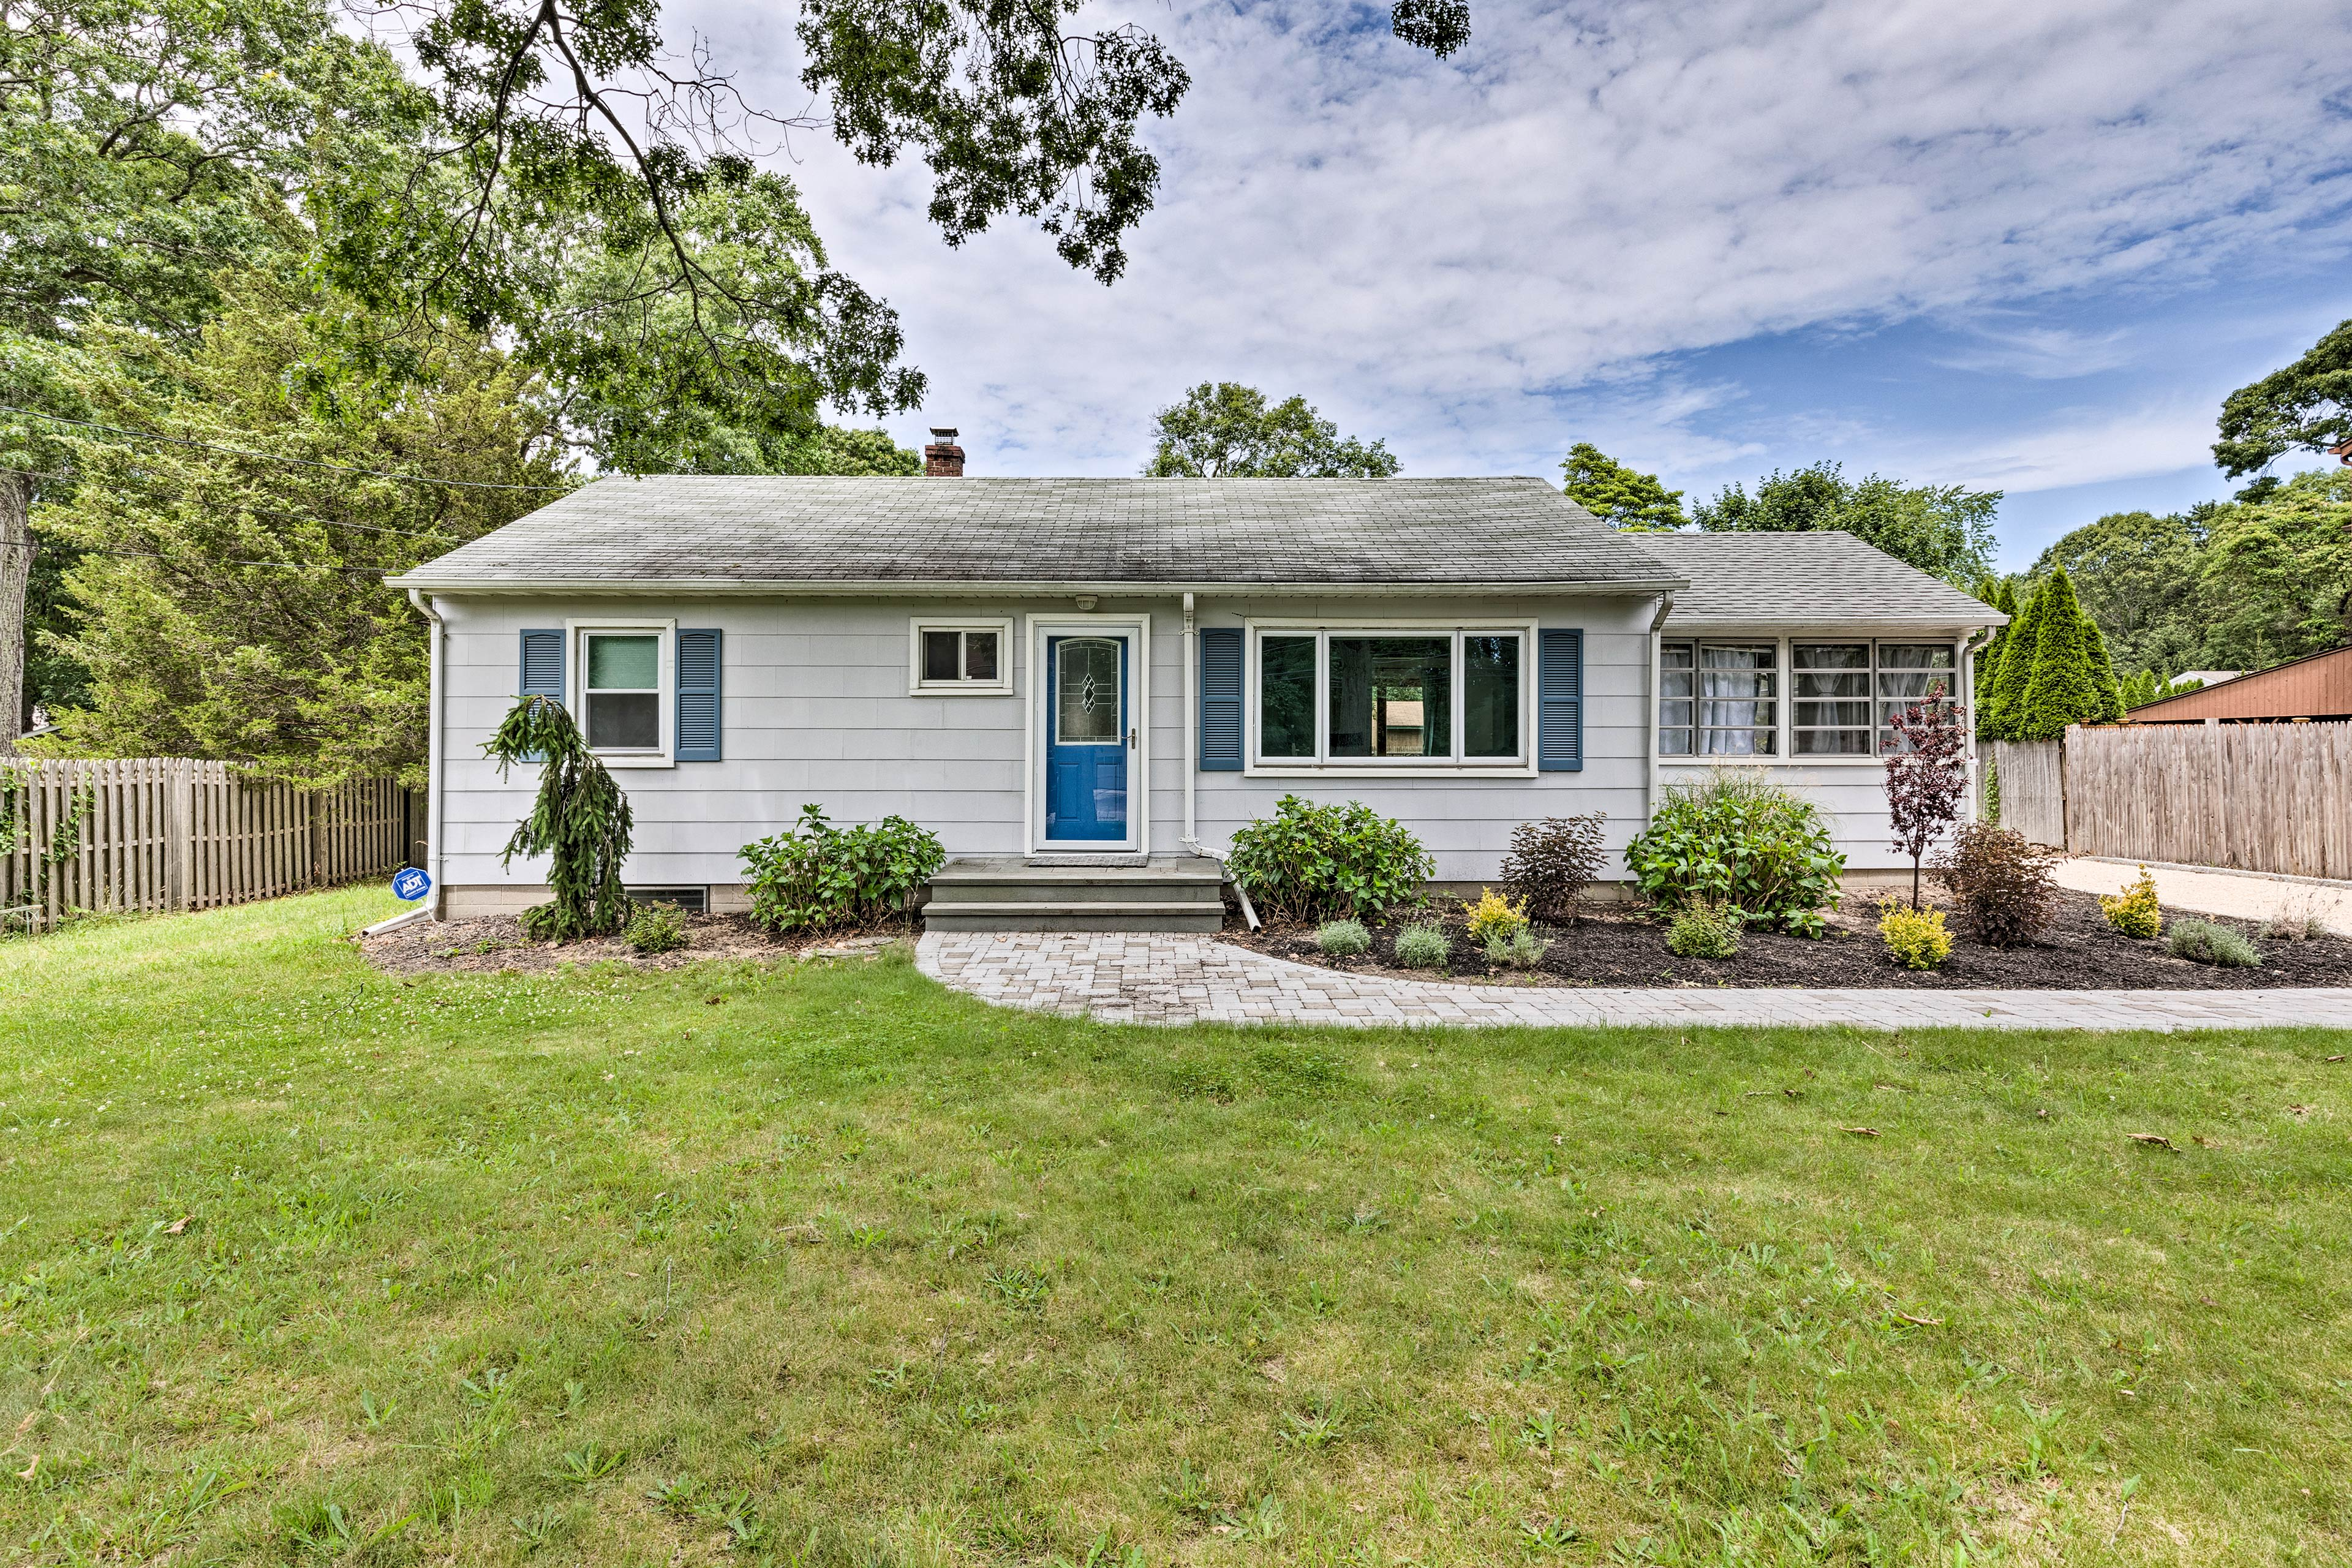 This property is situated near Montauk Highway for easy access to attractions!